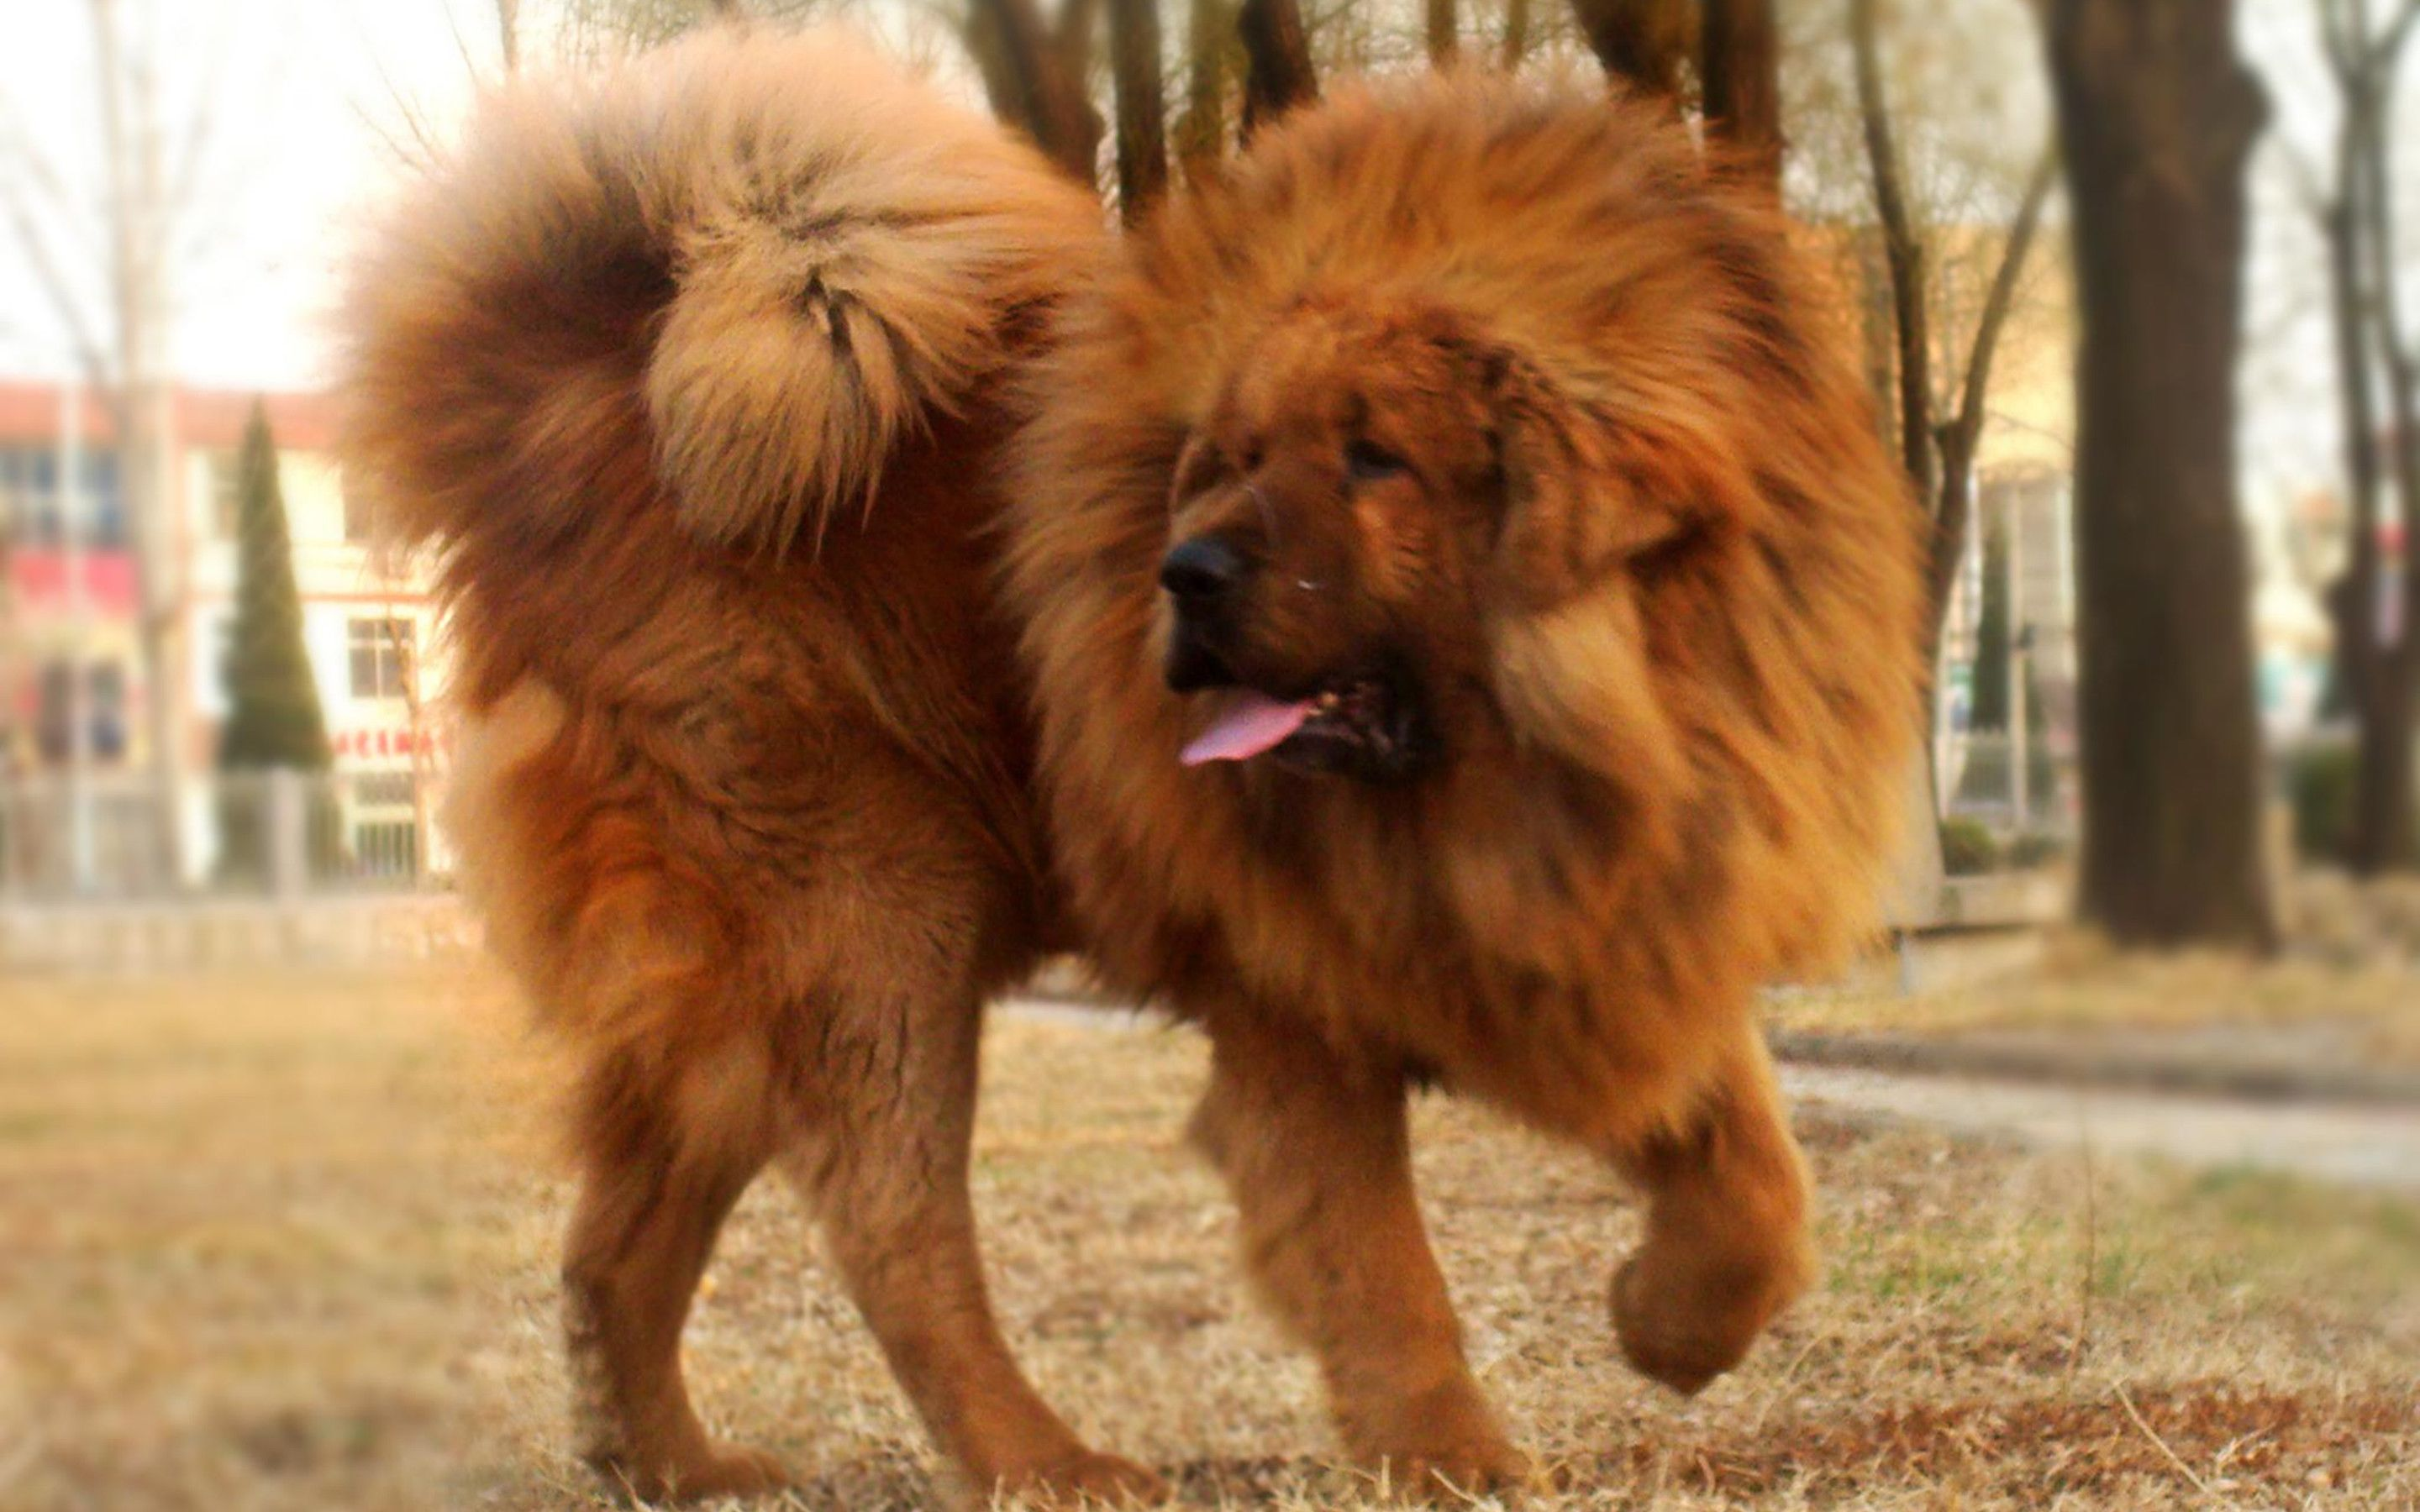 20130904155007-big-tibetan-mastiff-dog